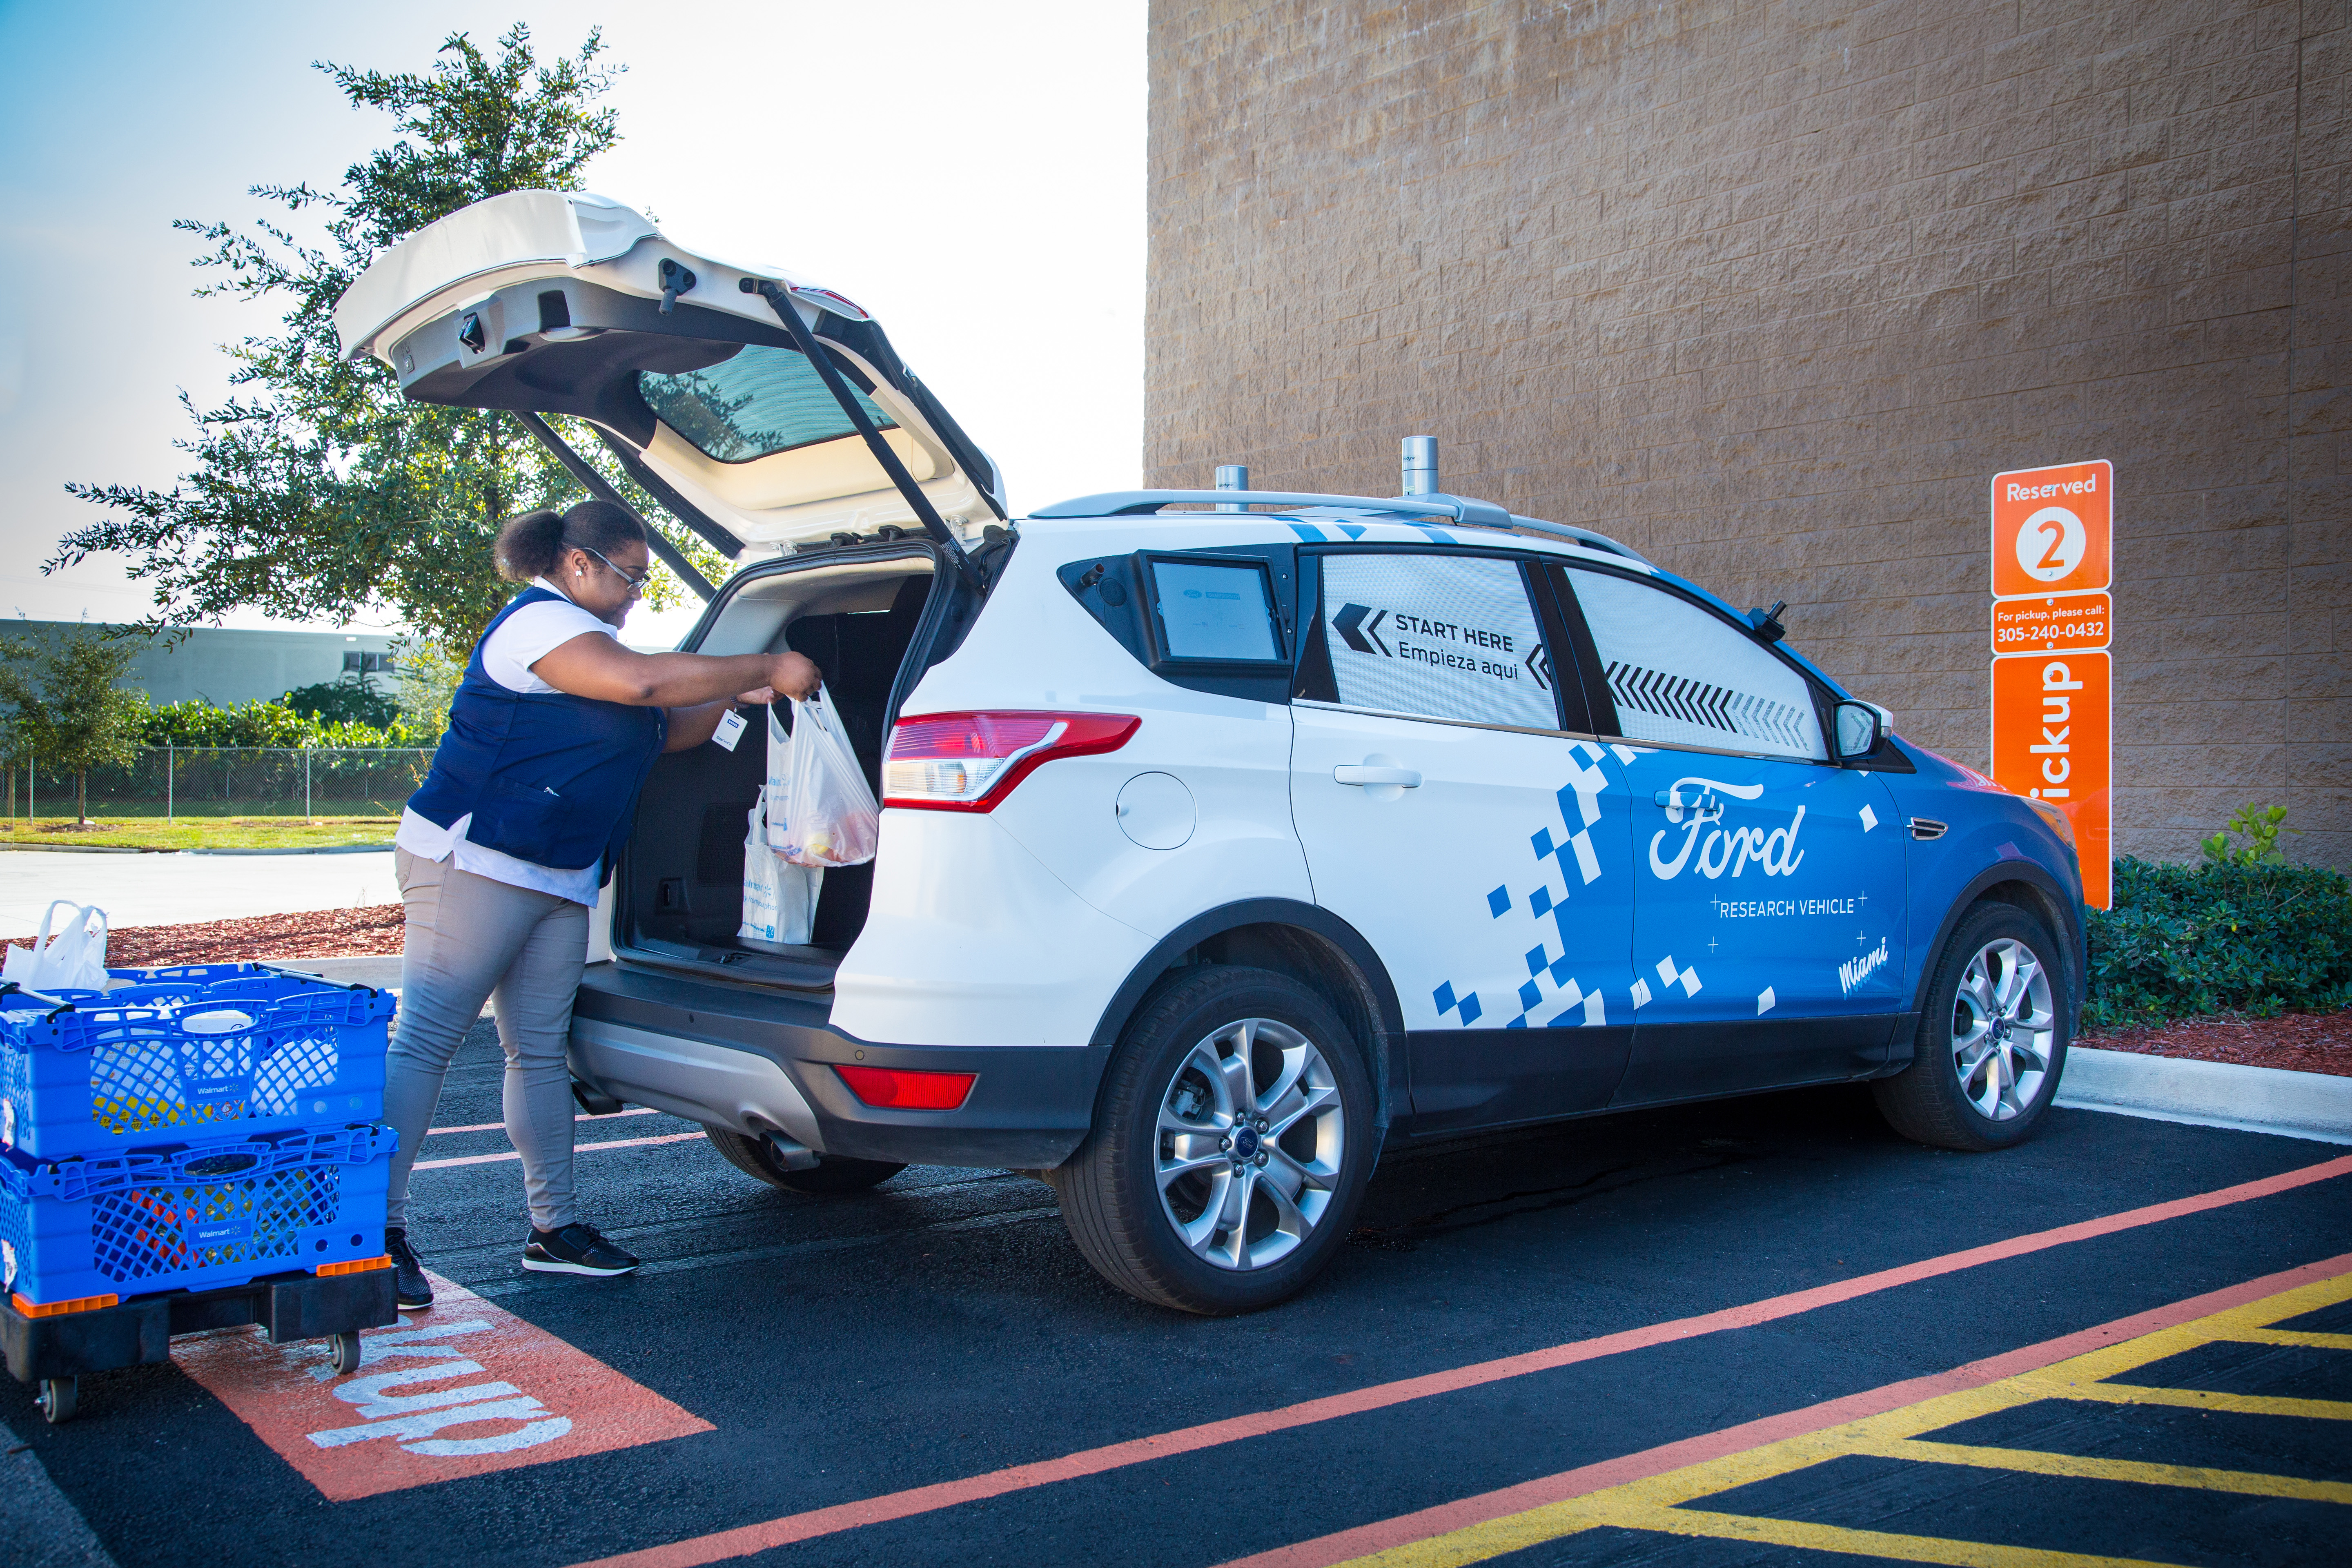 Walmart Car Shop Tire, A Walmart Associate Places A Grocery Delivery Order In A Ford Self Driving Vehicle, Walmart Car Shop Tire